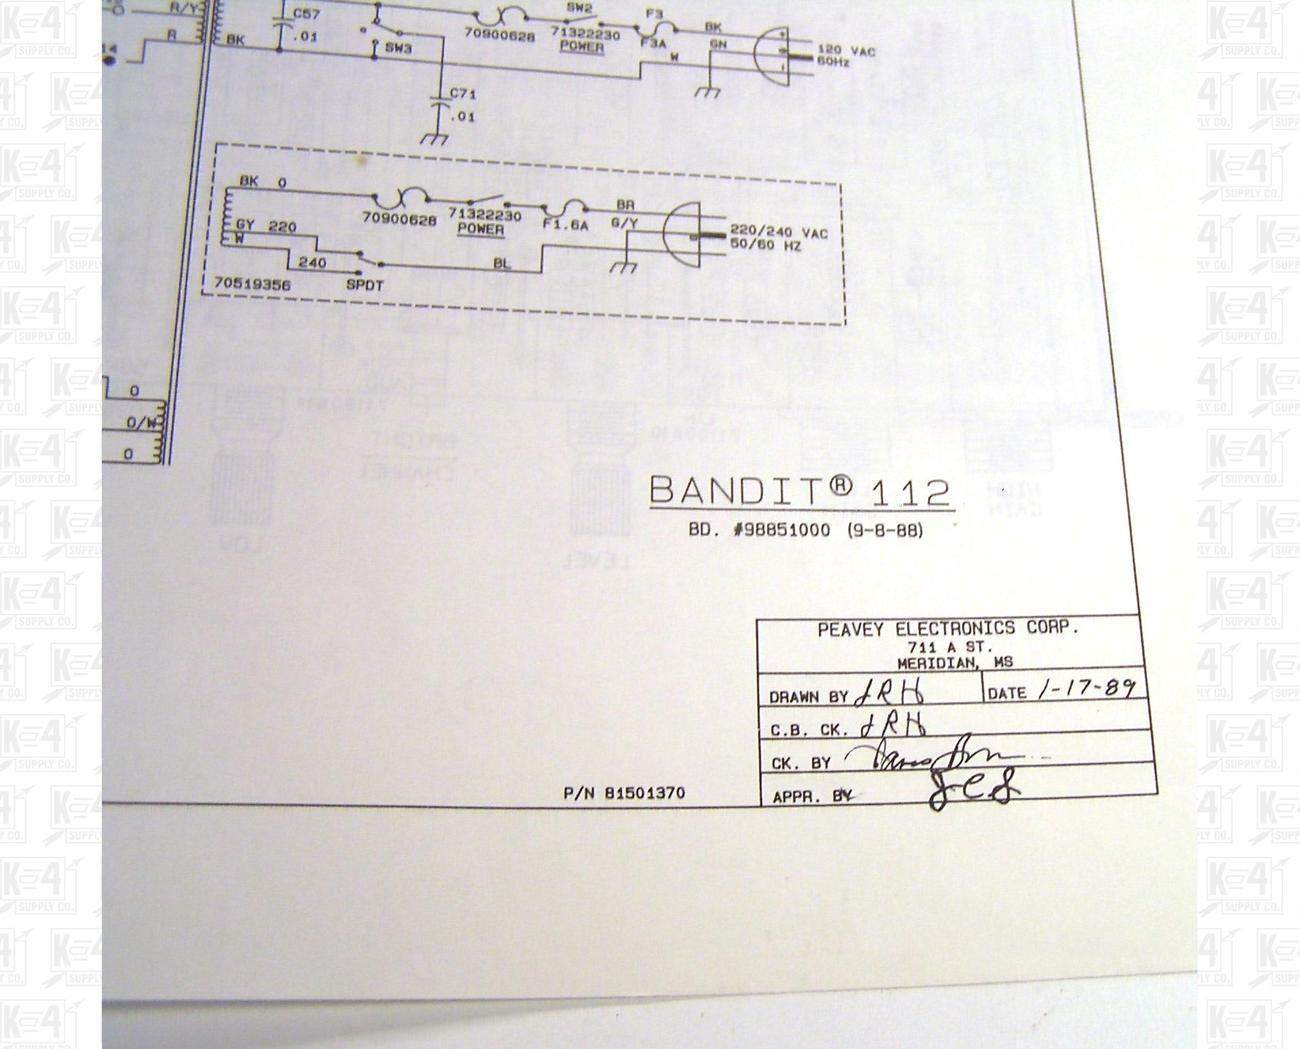 Peavey Bandit 112 Amplifier Schematic and Diagram